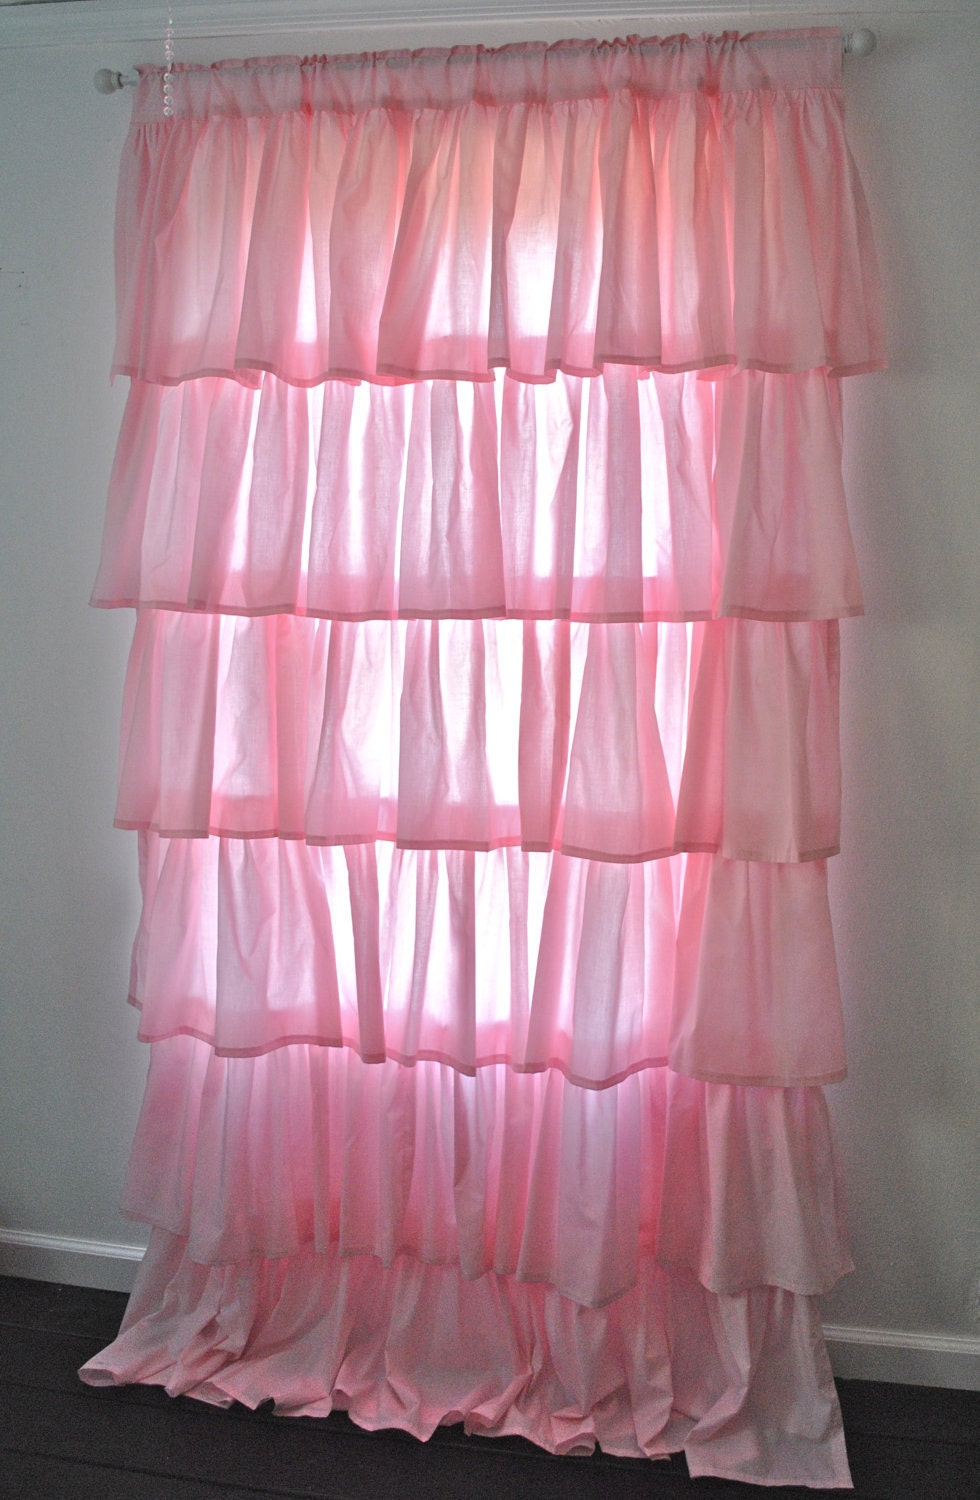 Pink Cotton Ruffled Curtain Ruffled